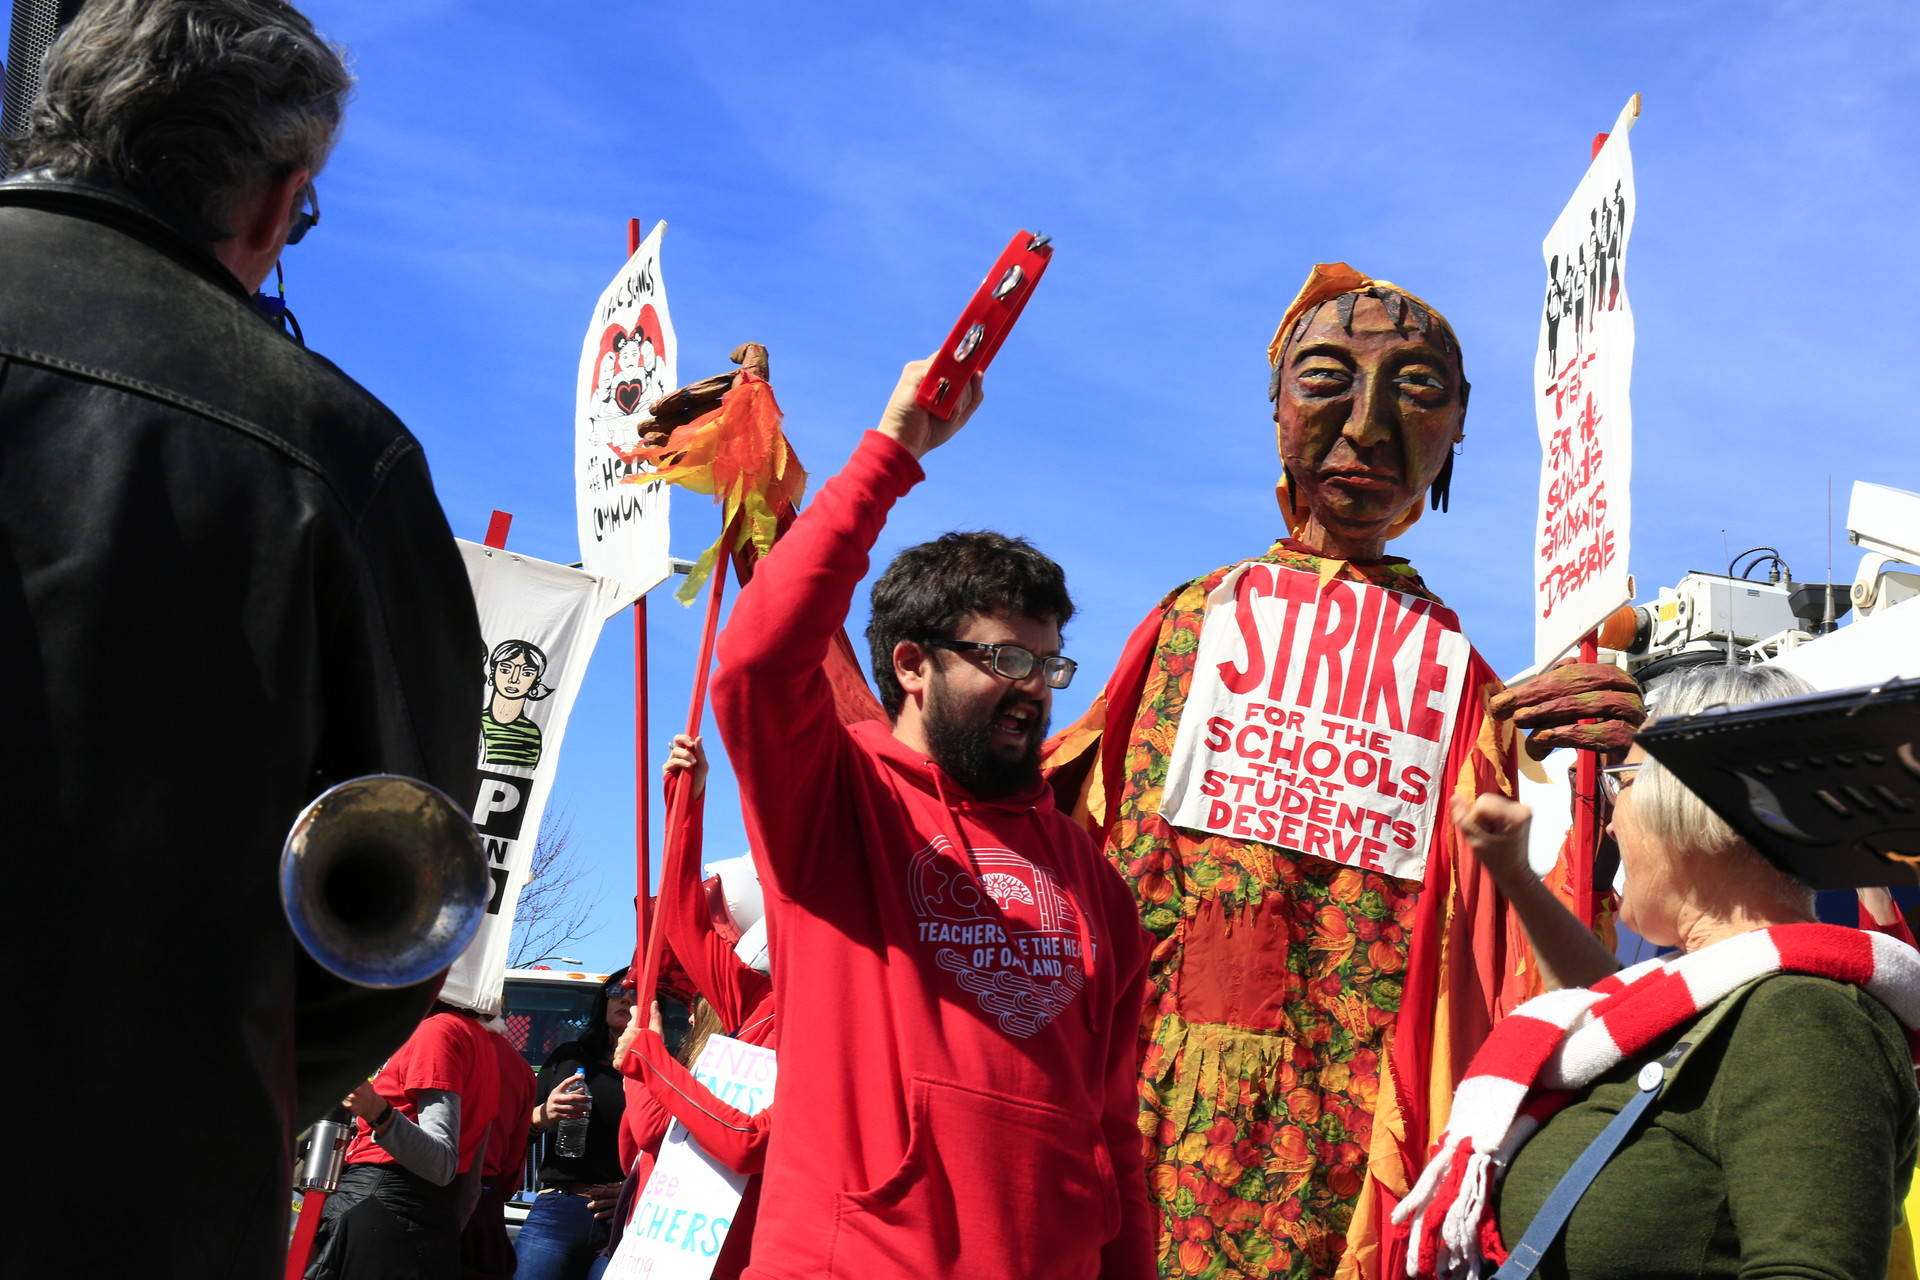 Rally and March for the Oakland Teacher's Strike in DeFremery Park, West Oakland February 22, 2019. Stephanie Lister/KQED